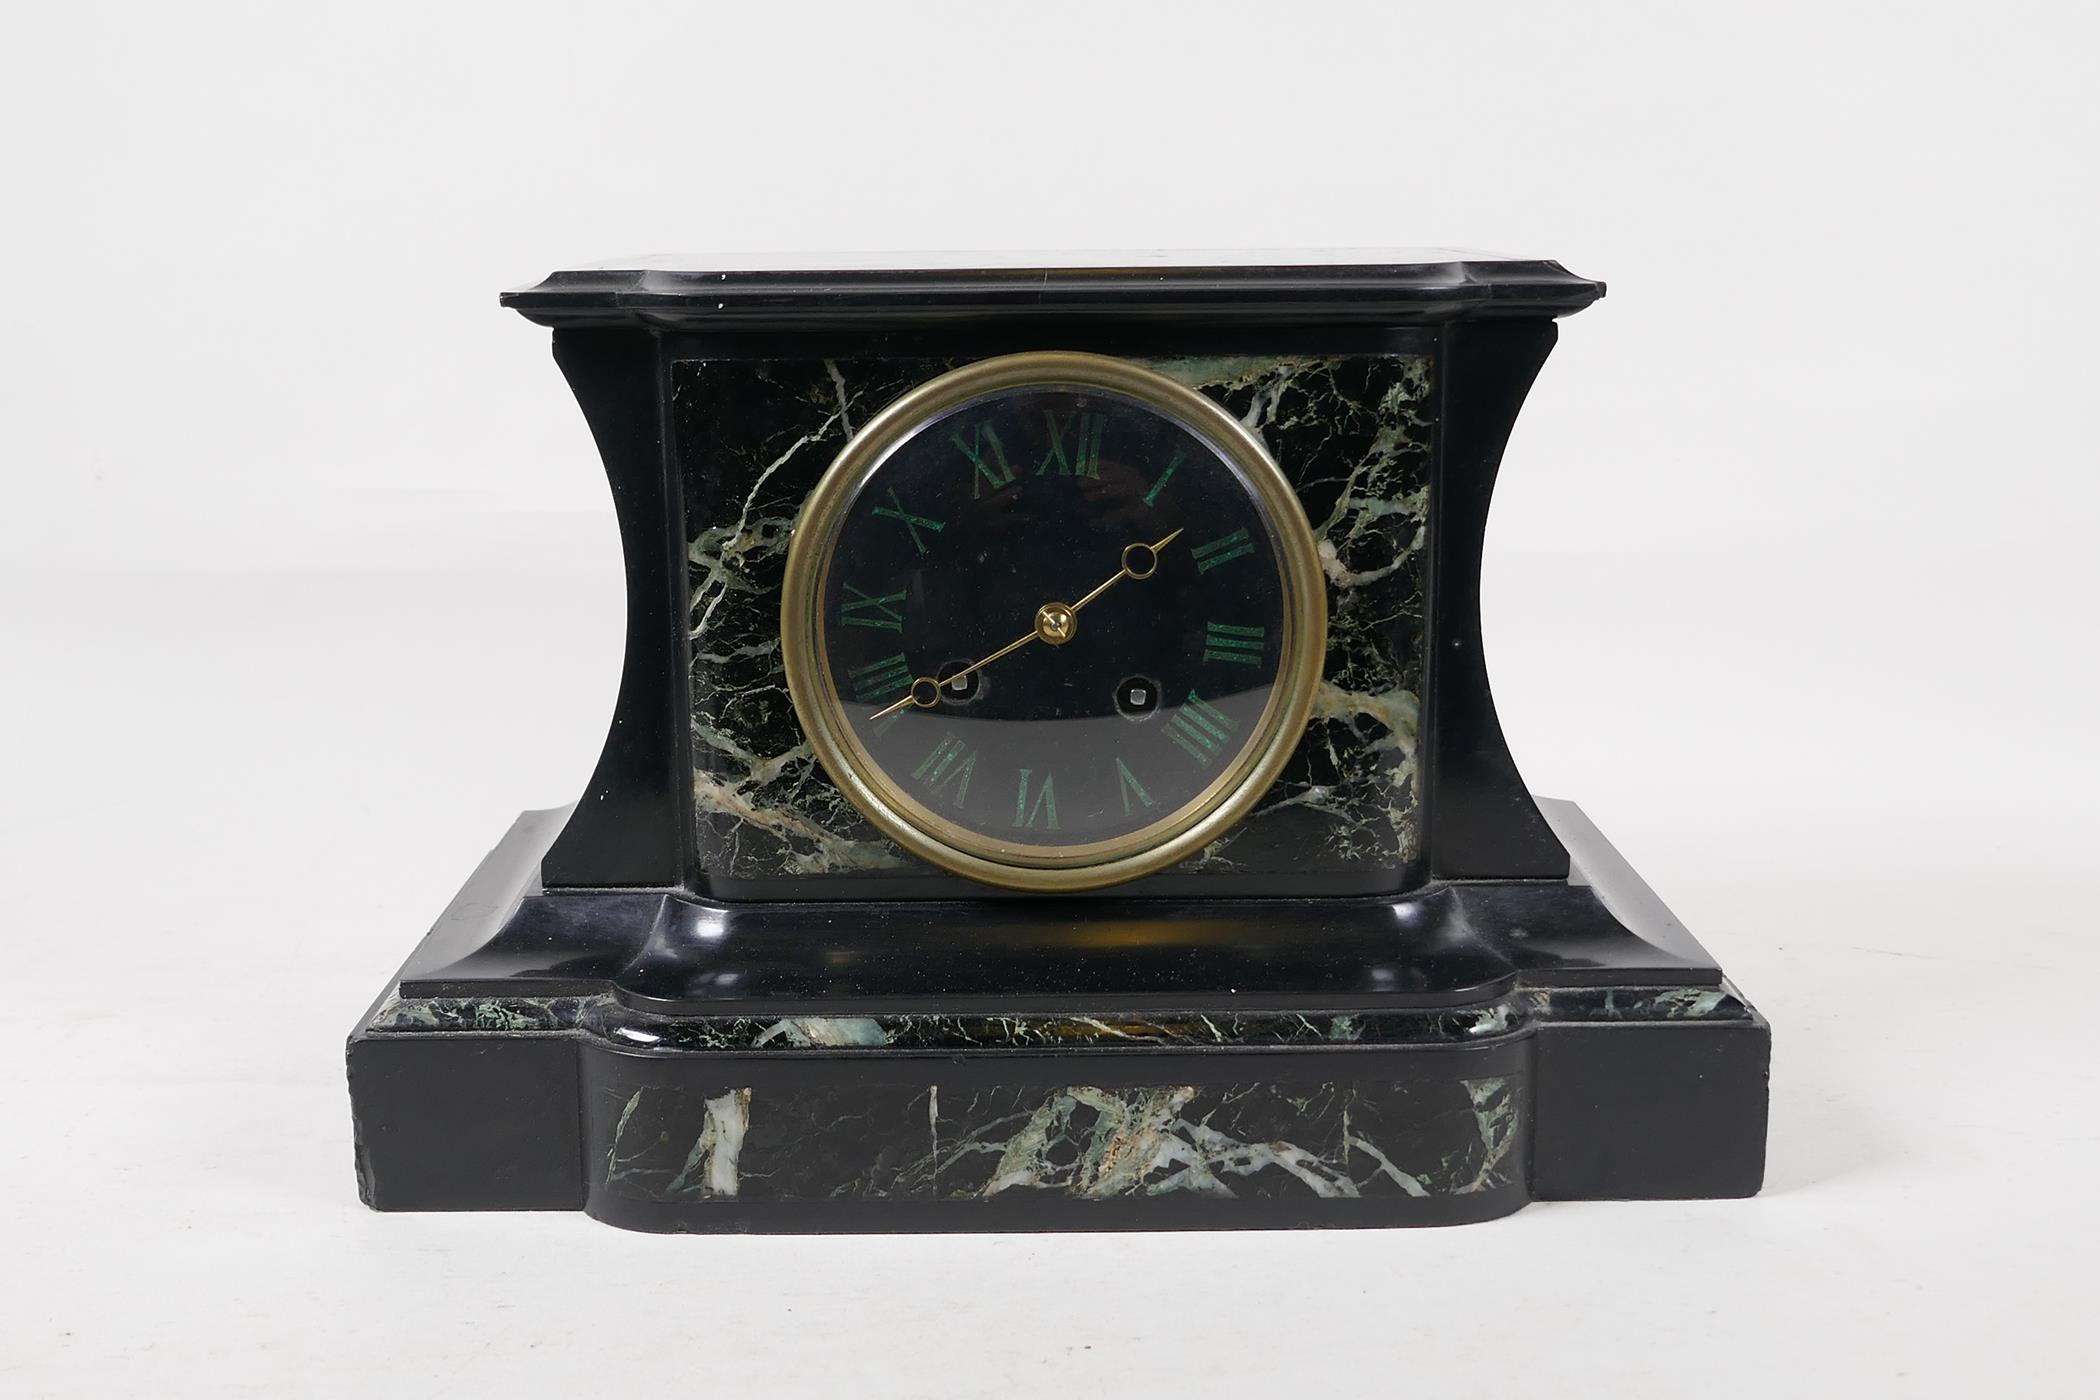 A C19th French vert de mer marble and slate mantel clock with inset malachite Roman numerals, the